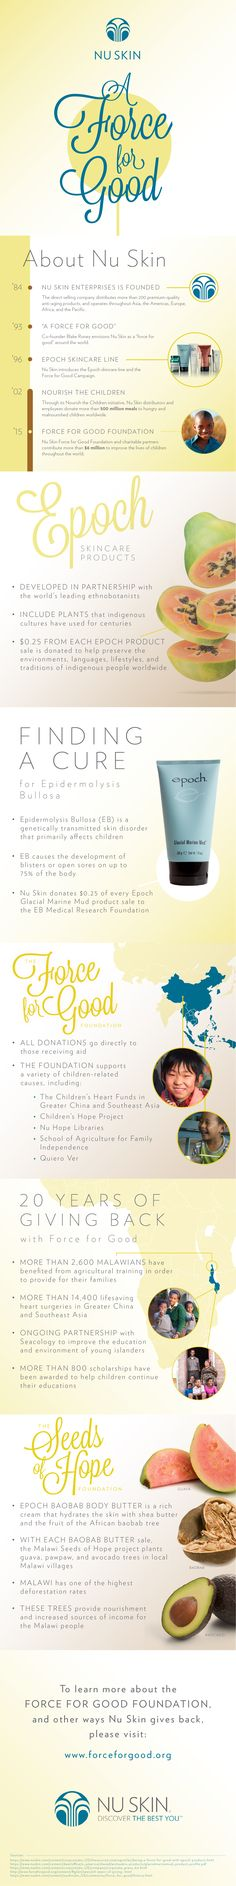 From its first project to support families living in Western Samoa to the now hundreds of humanitarian projects in more than 50 countries, the Nu Skin Force for Good Foundation is committed to making a difference in the lives of child